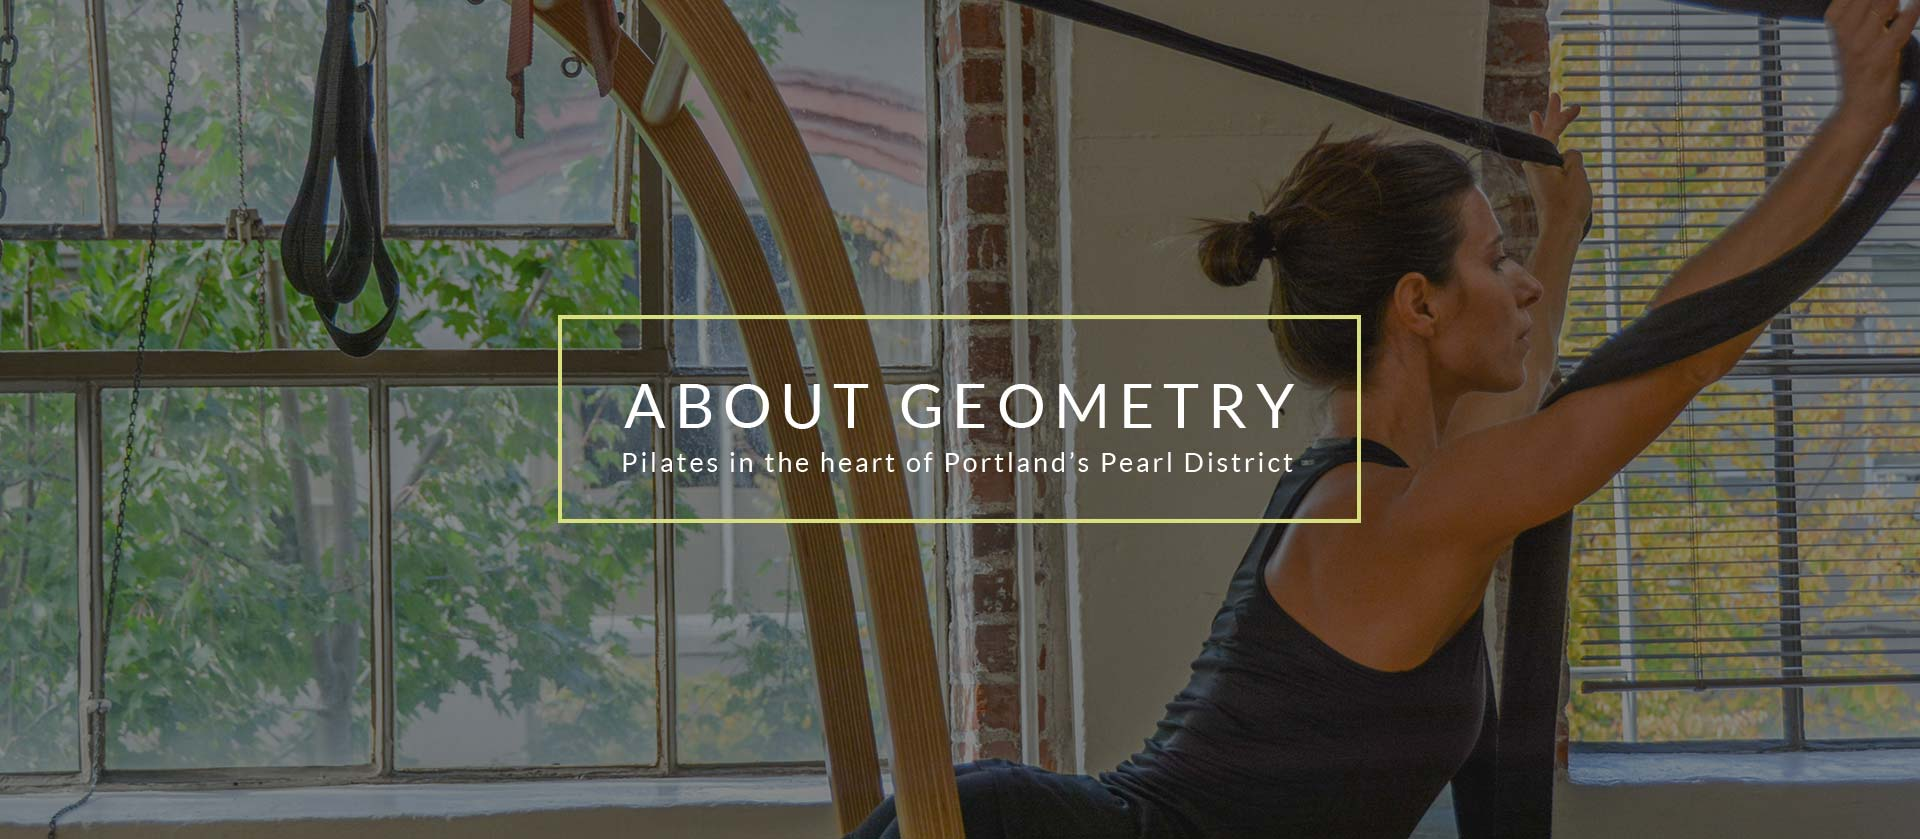 About Geometry Pilates